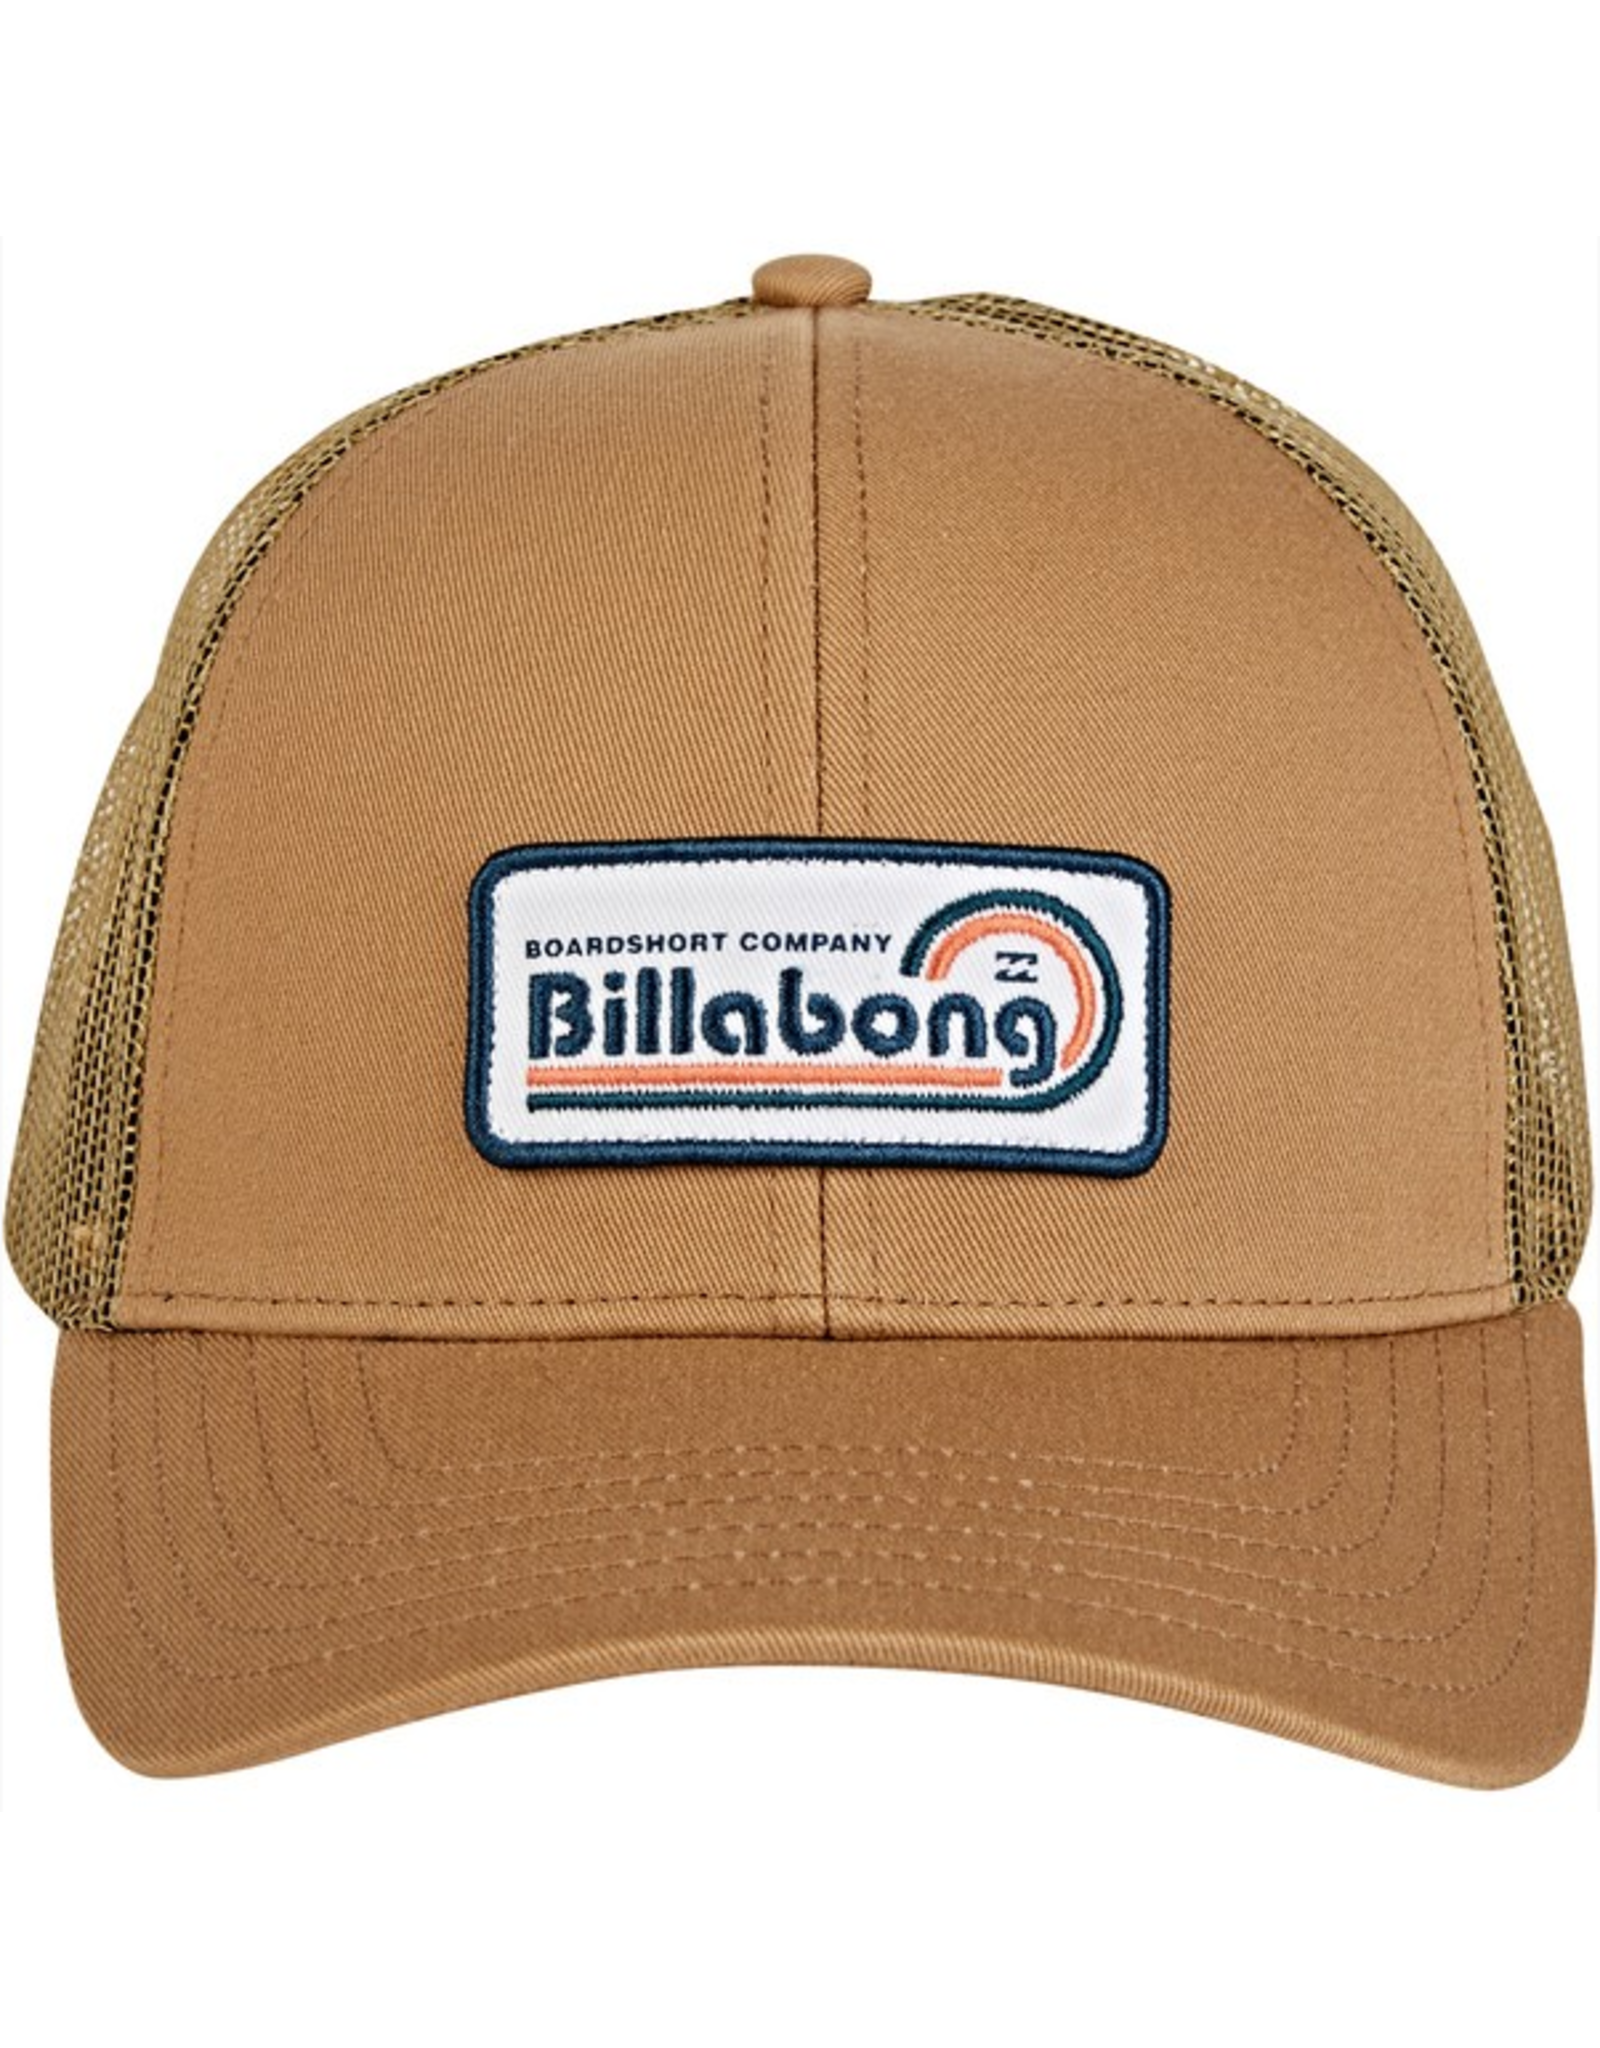 Billabong Billabong Walled Trucker